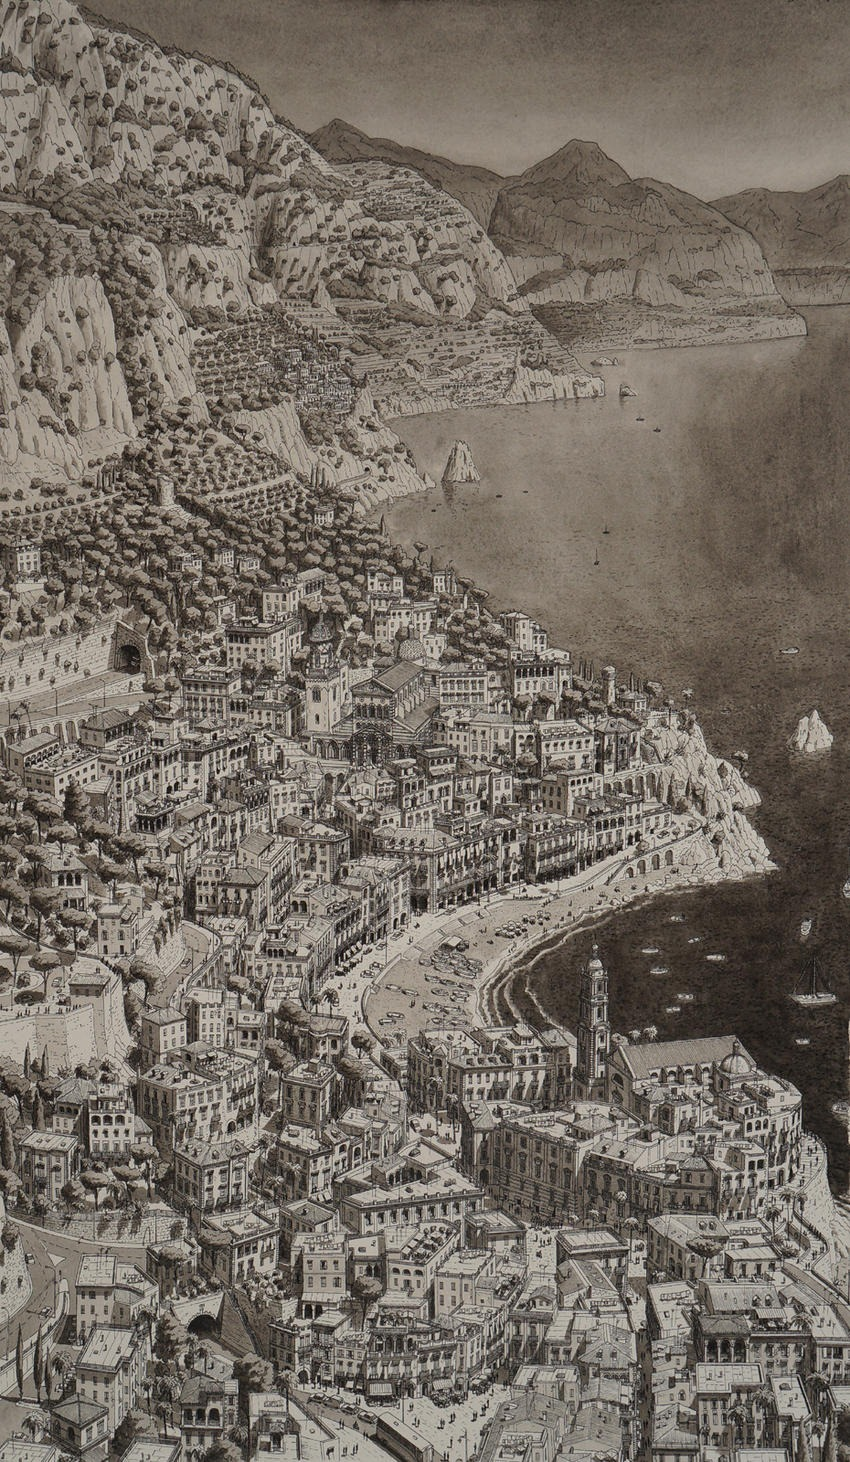 Stefan Bleekrode Cityscapes from Memory town-on-amalfi-coast